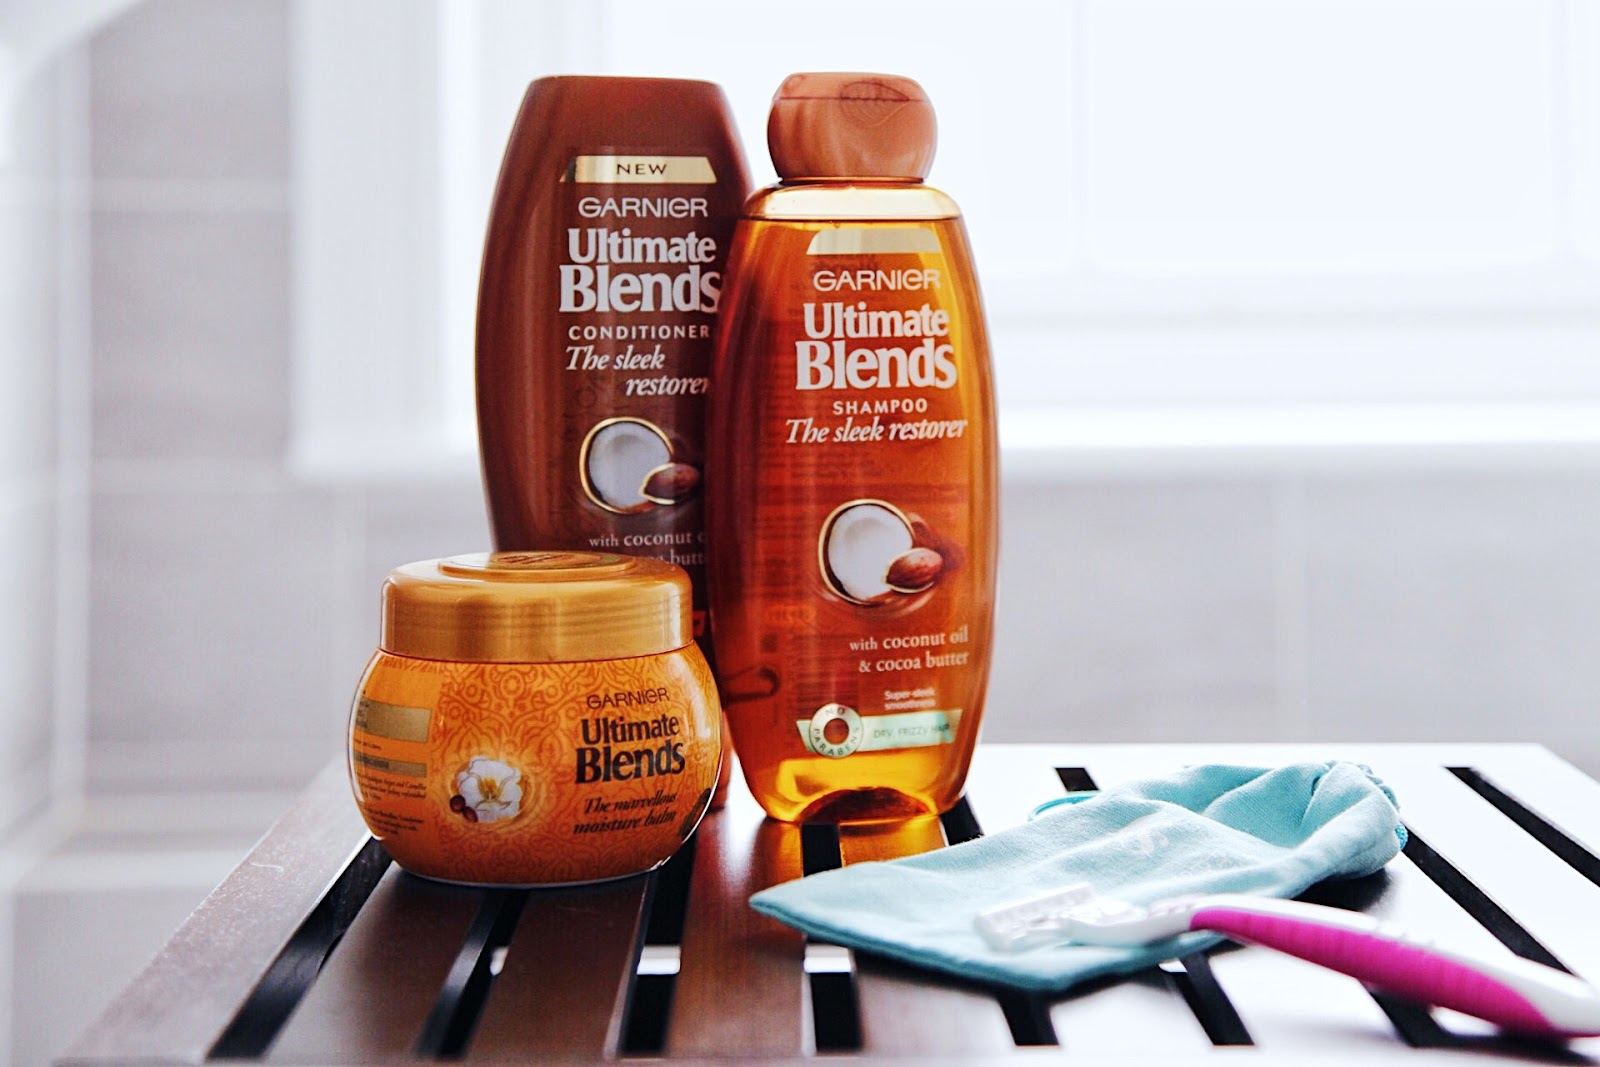 Garnier Sleek Restorer Shampoo and Conditioner on dark wooden box.